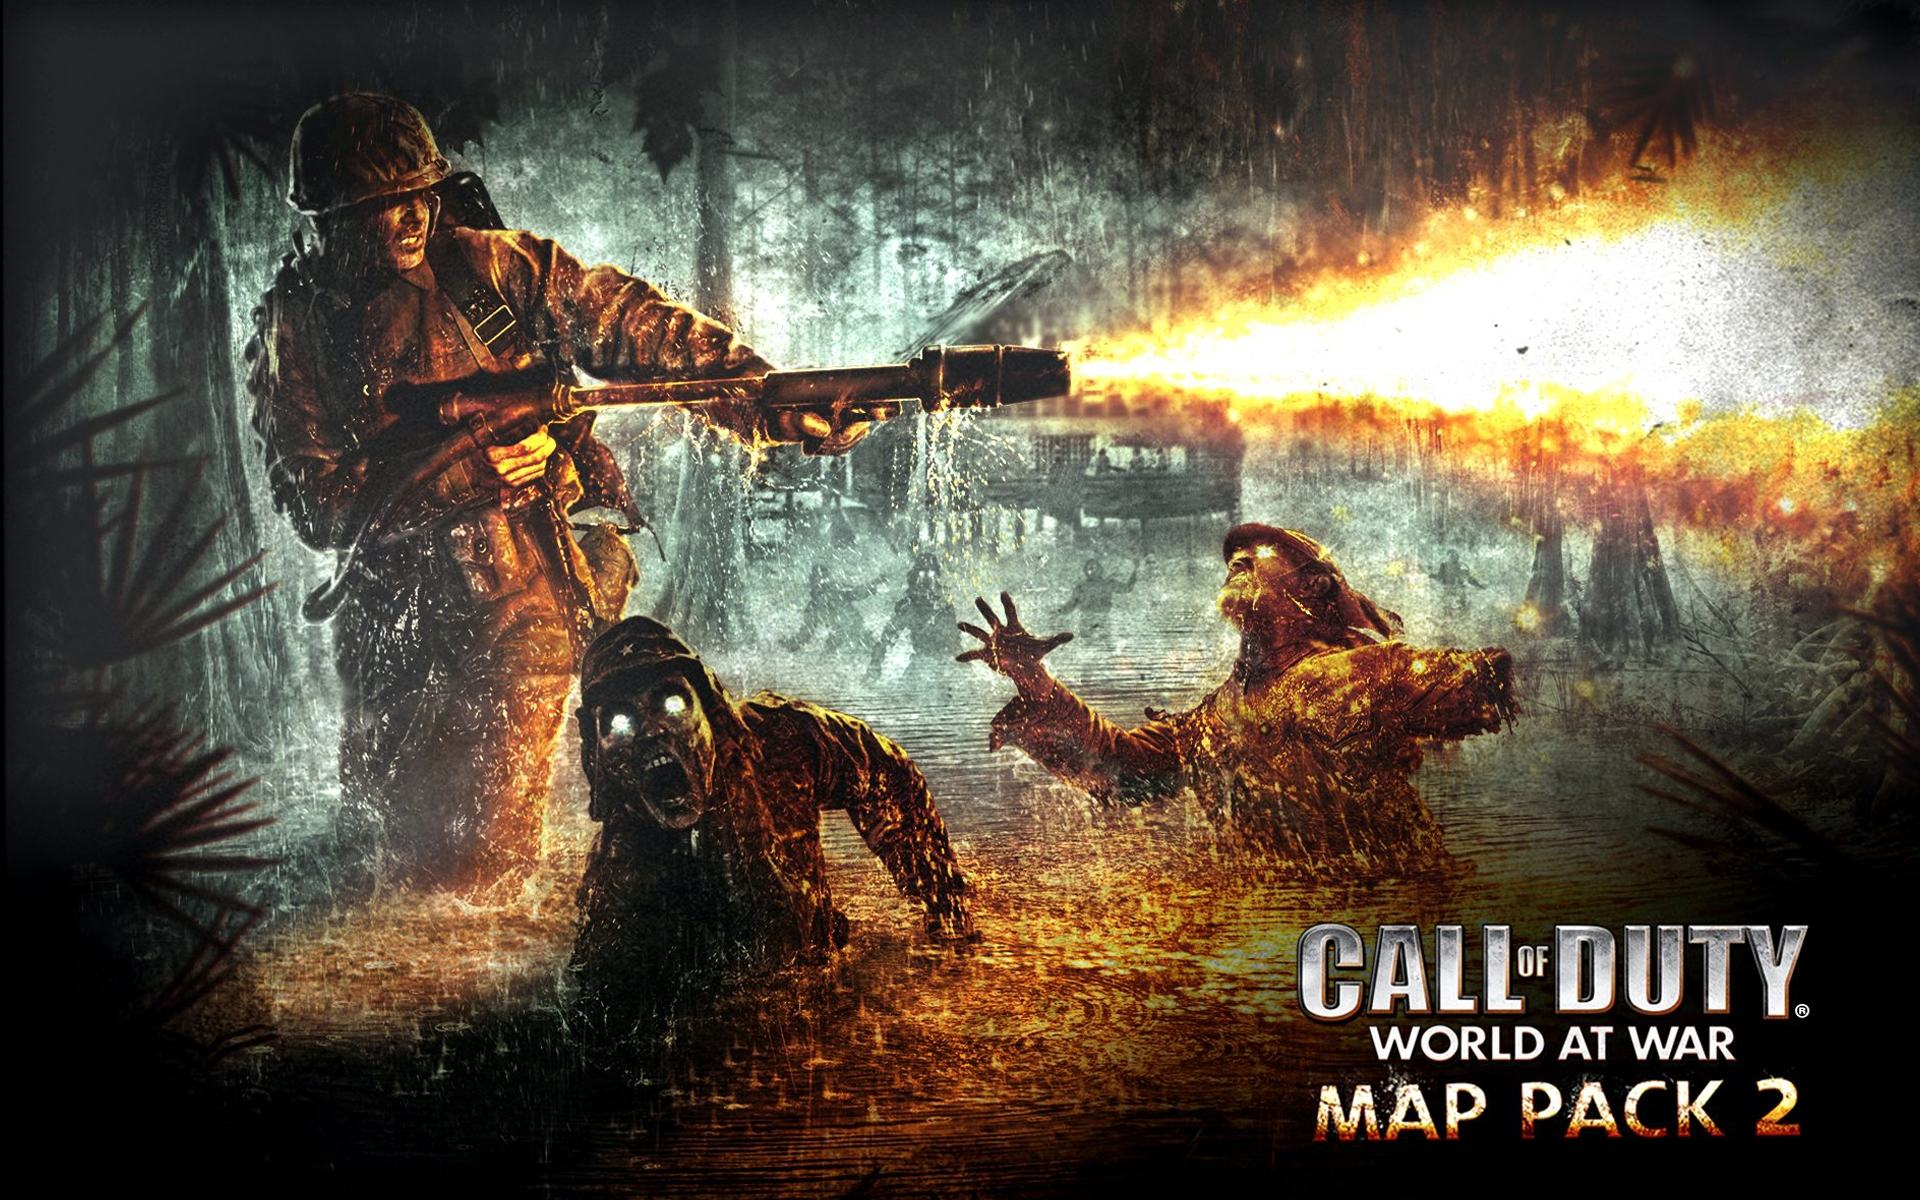 ���� Call Of Duty, ���� Map pack 2 1920x1200